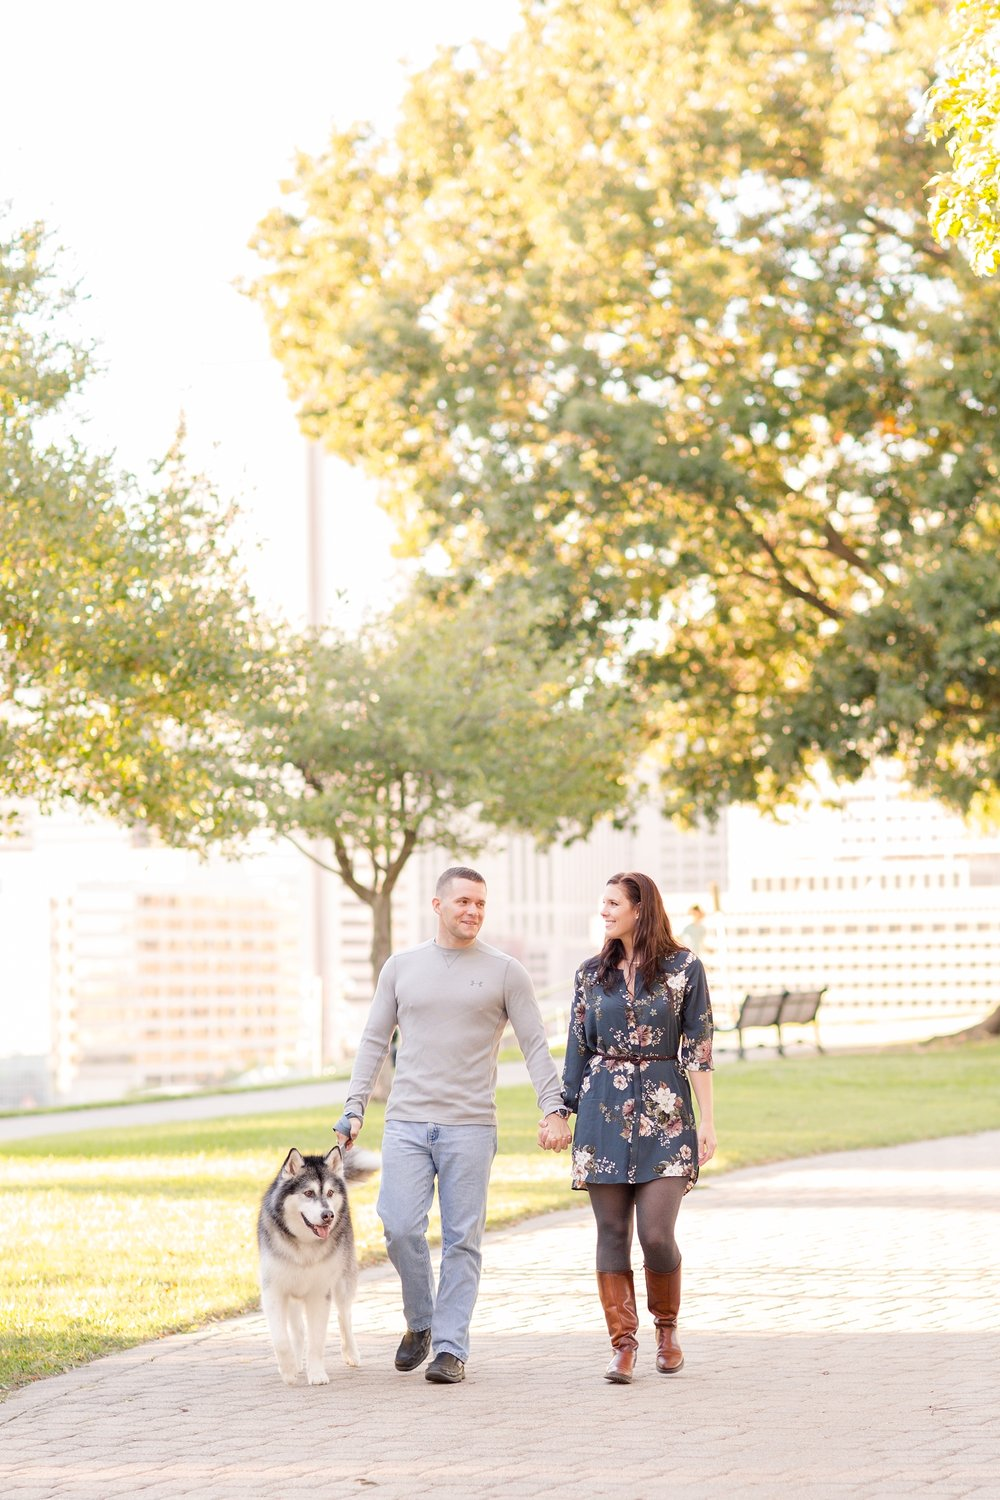 Mary Ellen & Tim Engagement-163_anna grace photography baltimore maryland engagement and wedding photographer downtown baltimore engagement photo.jpg